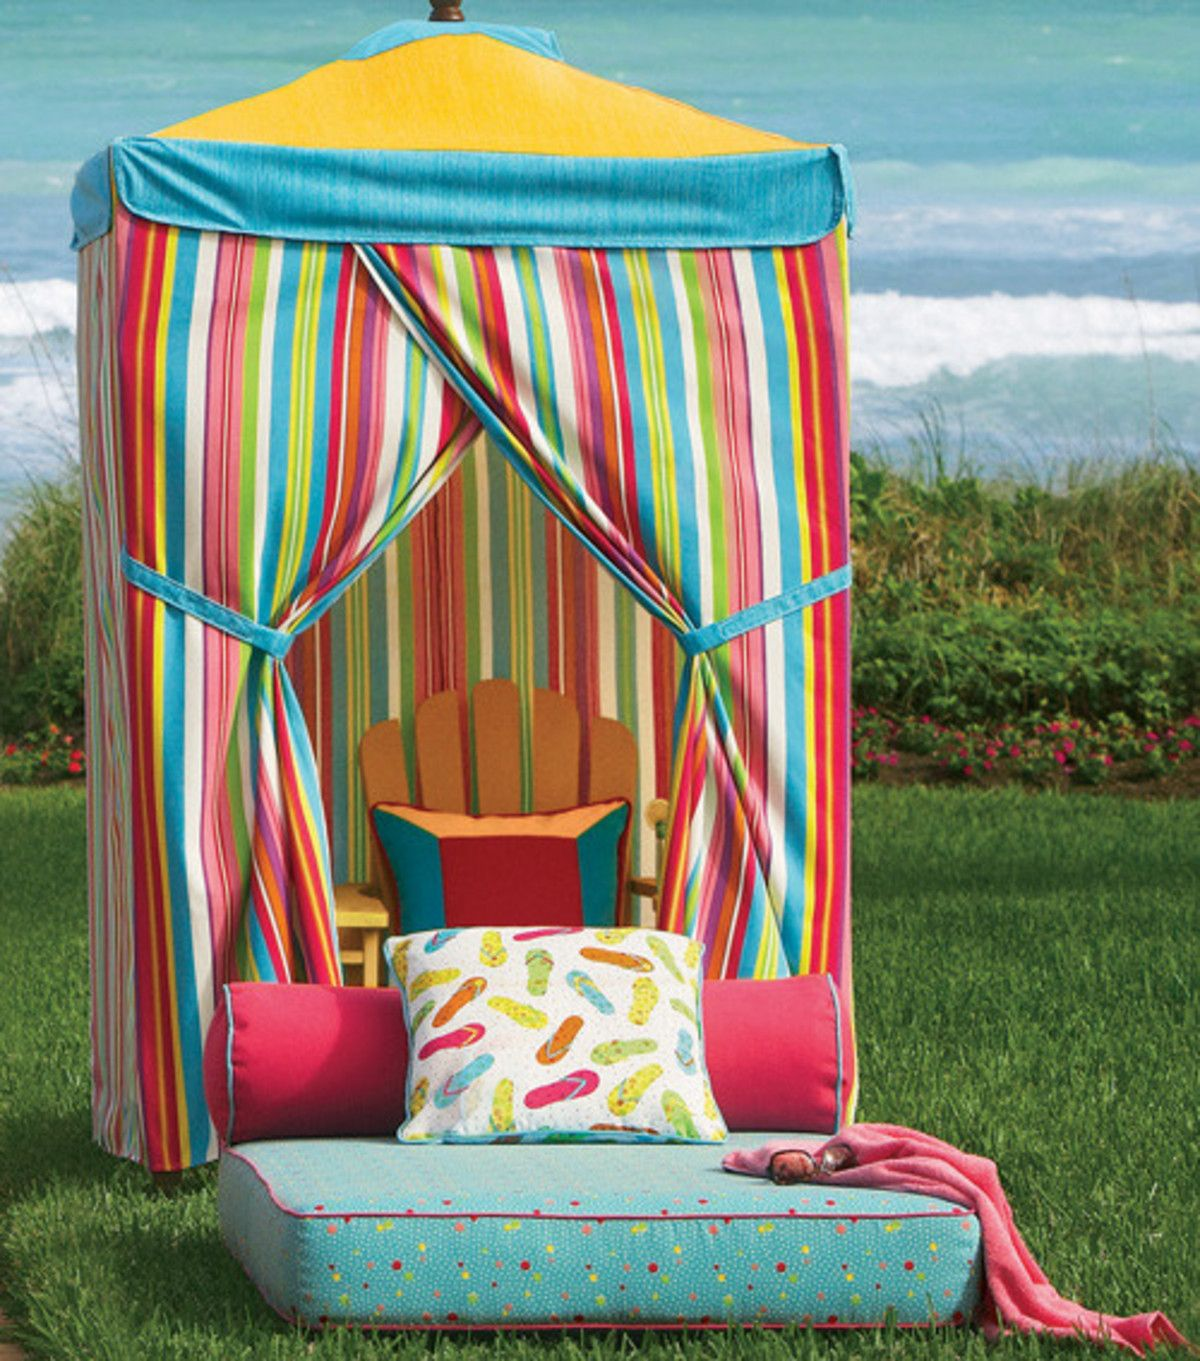 Diy Cabana Curtains We Would Love To Have This In Our Backyard Cabana Diy